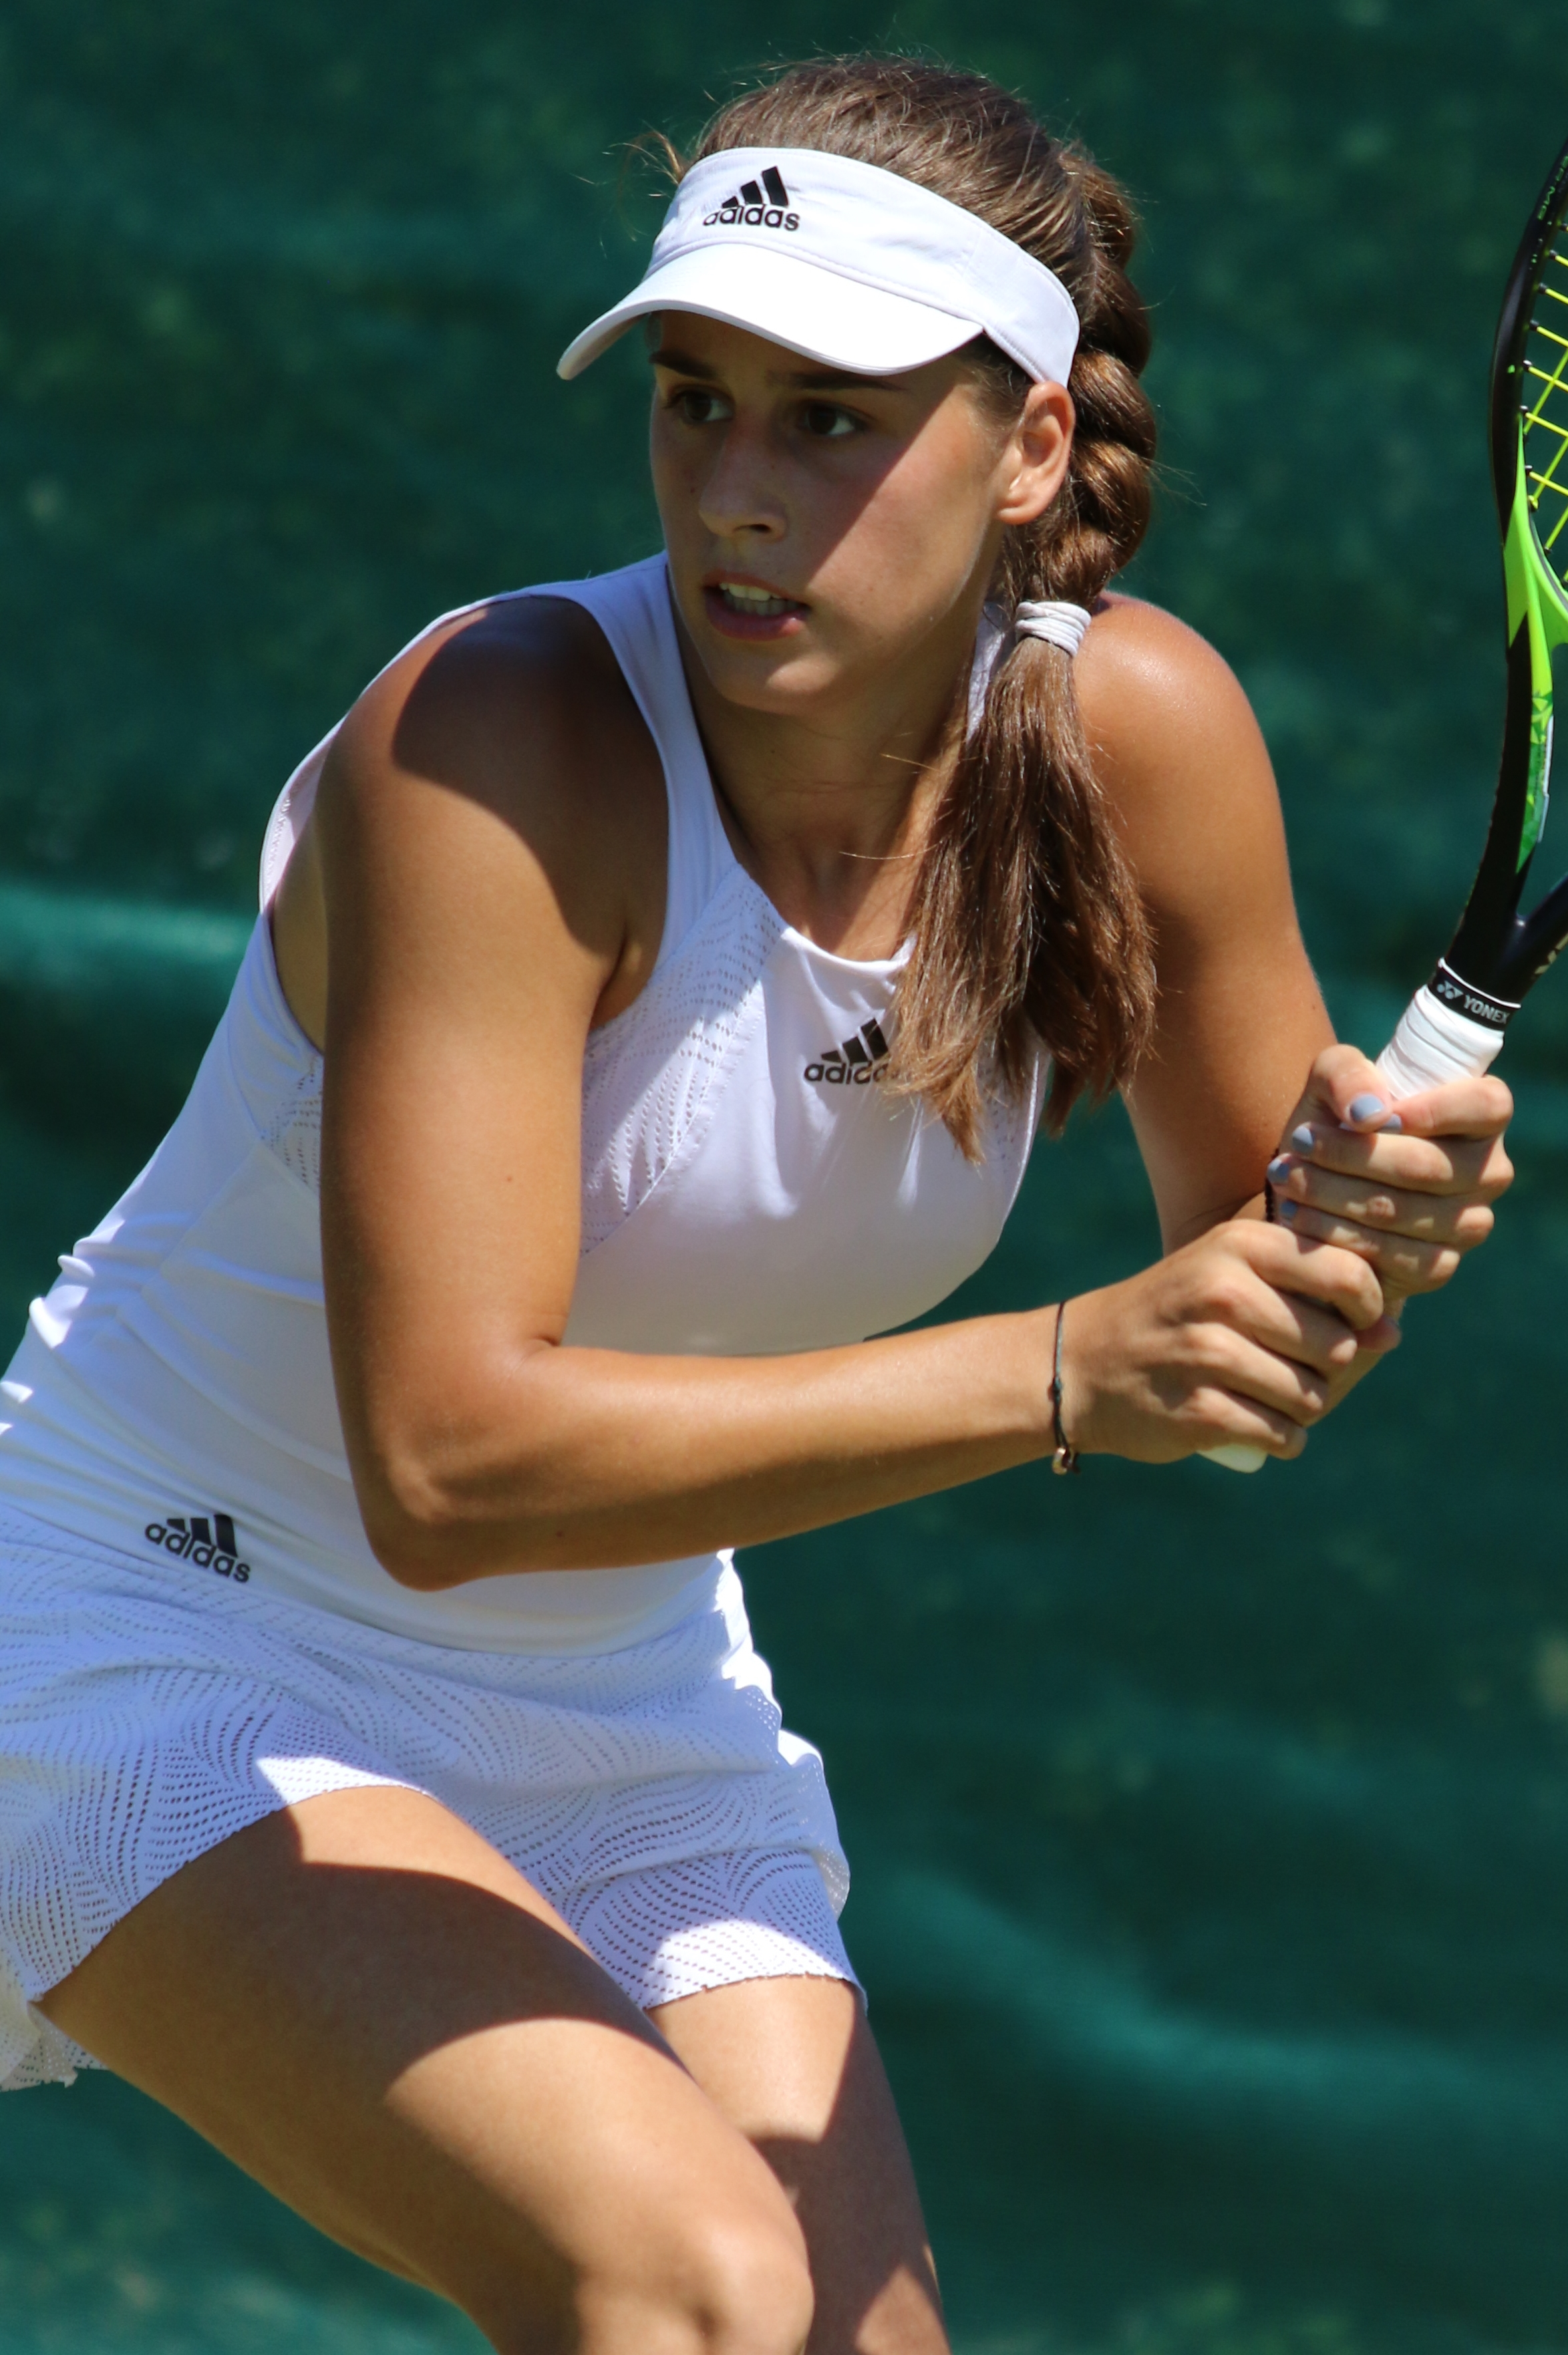 best dating tennis players female 2014